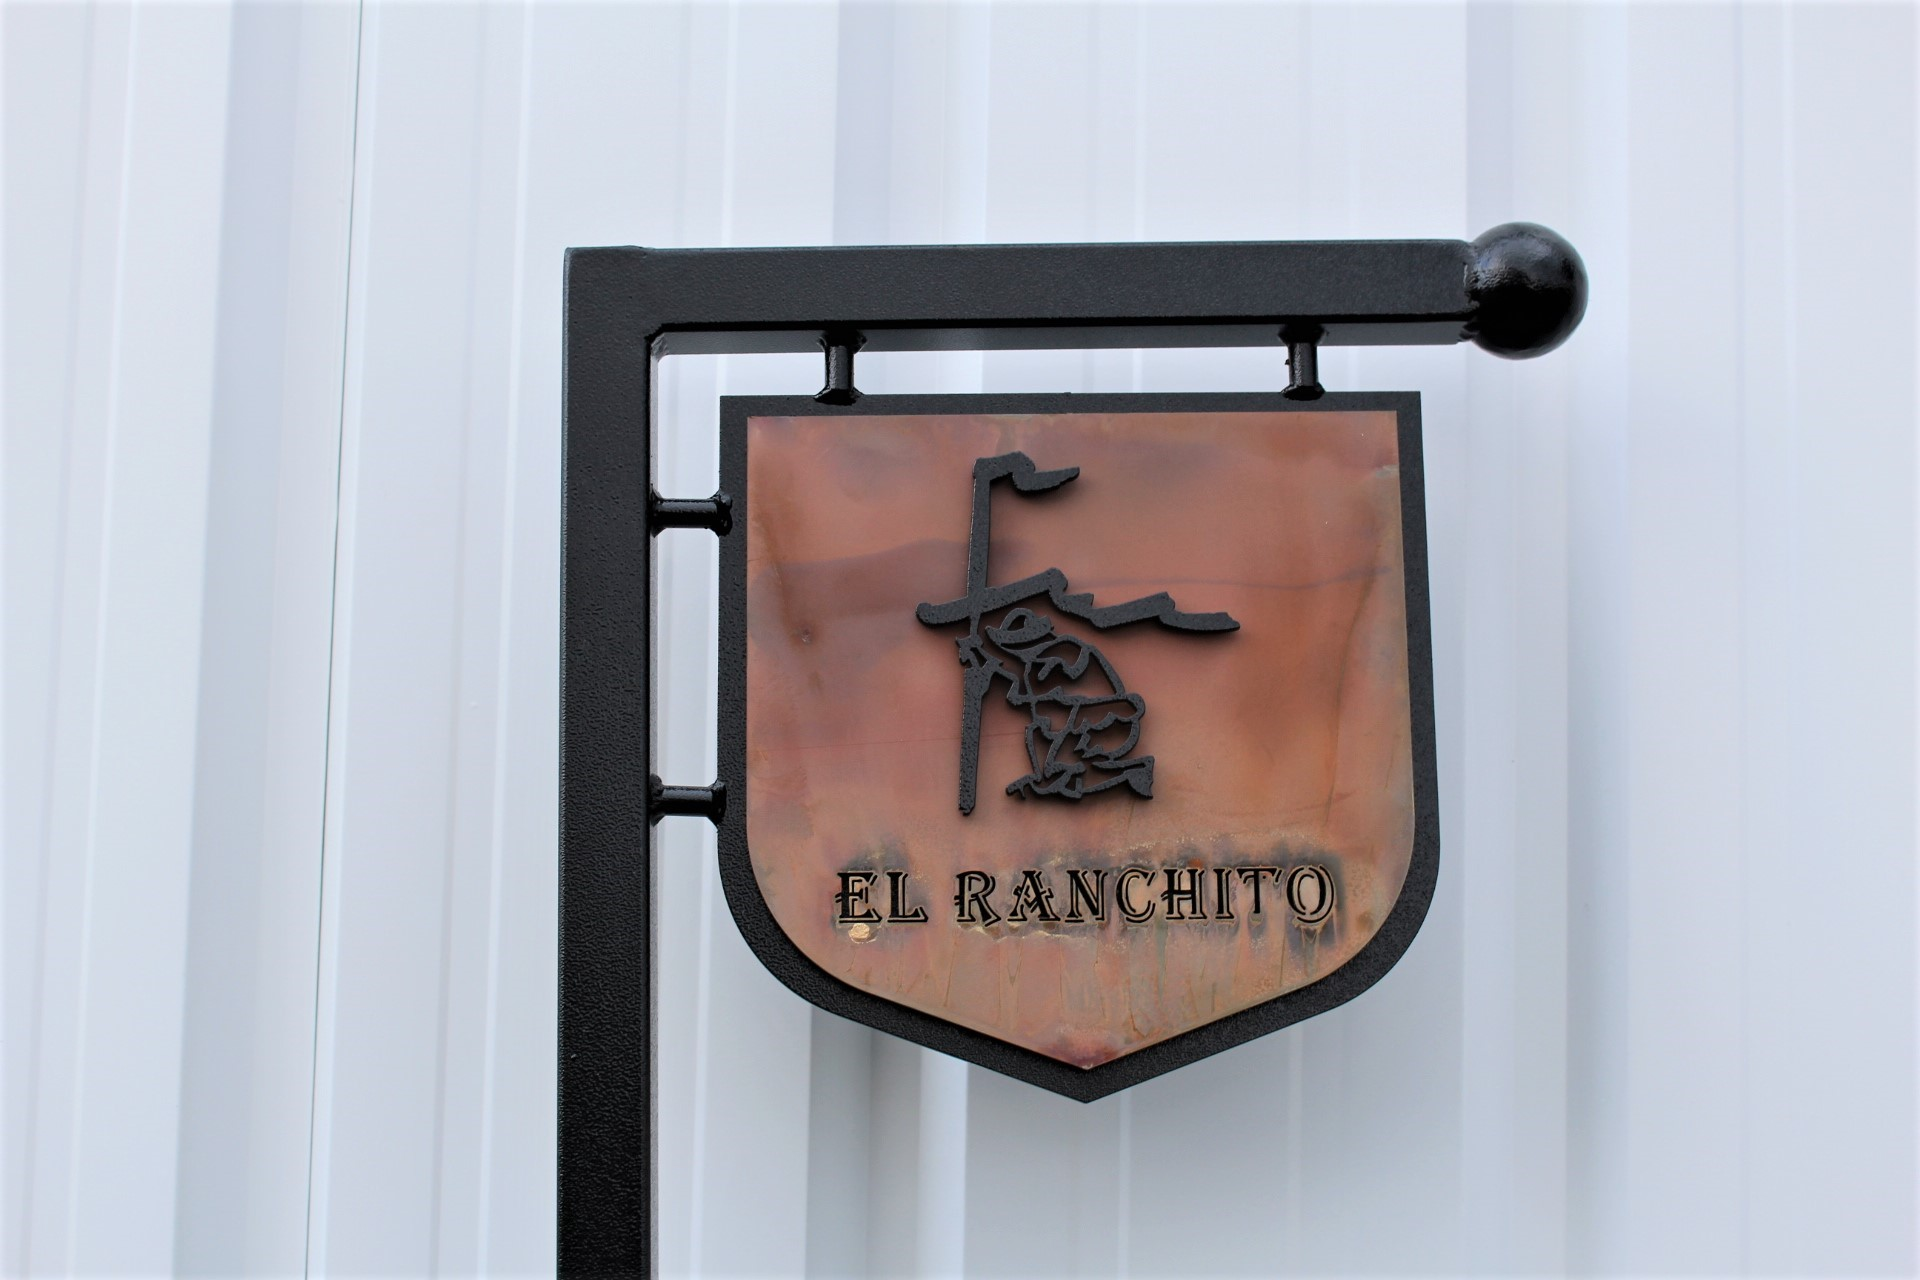 Rancho La Quinta Sign